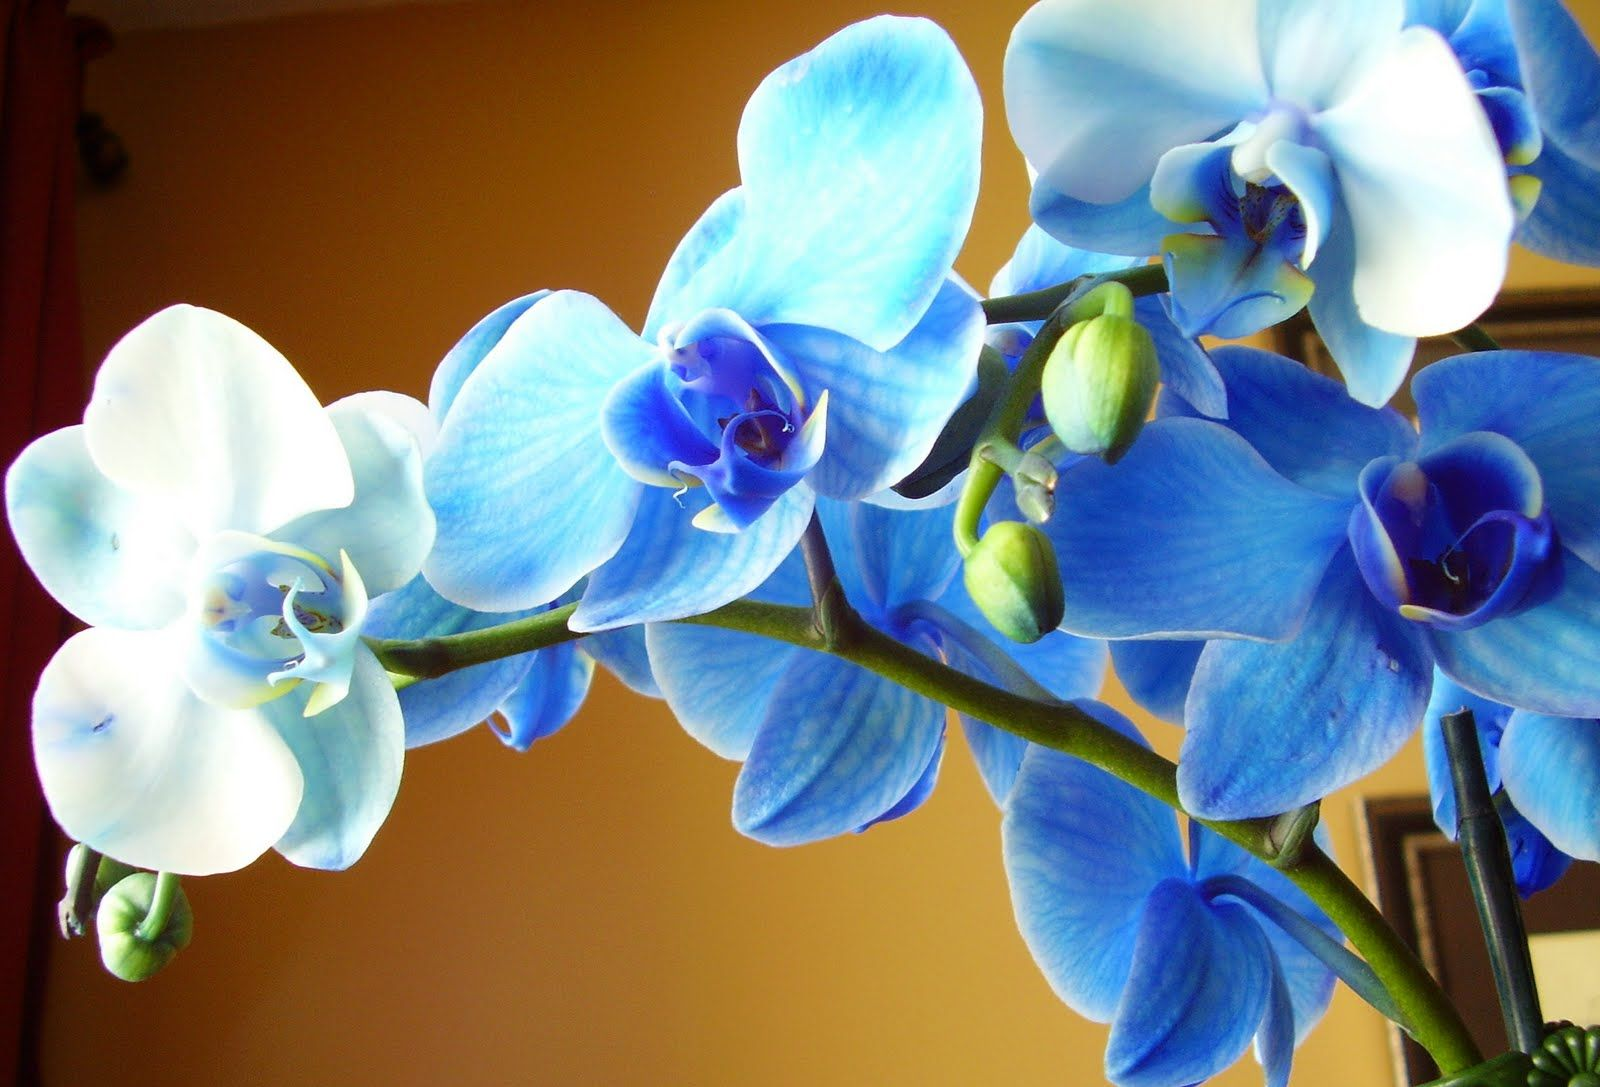 Blue Orchids Studio Girasole Blue Mystique Blue Orchid Flower Blue Orchids Orchid Flower